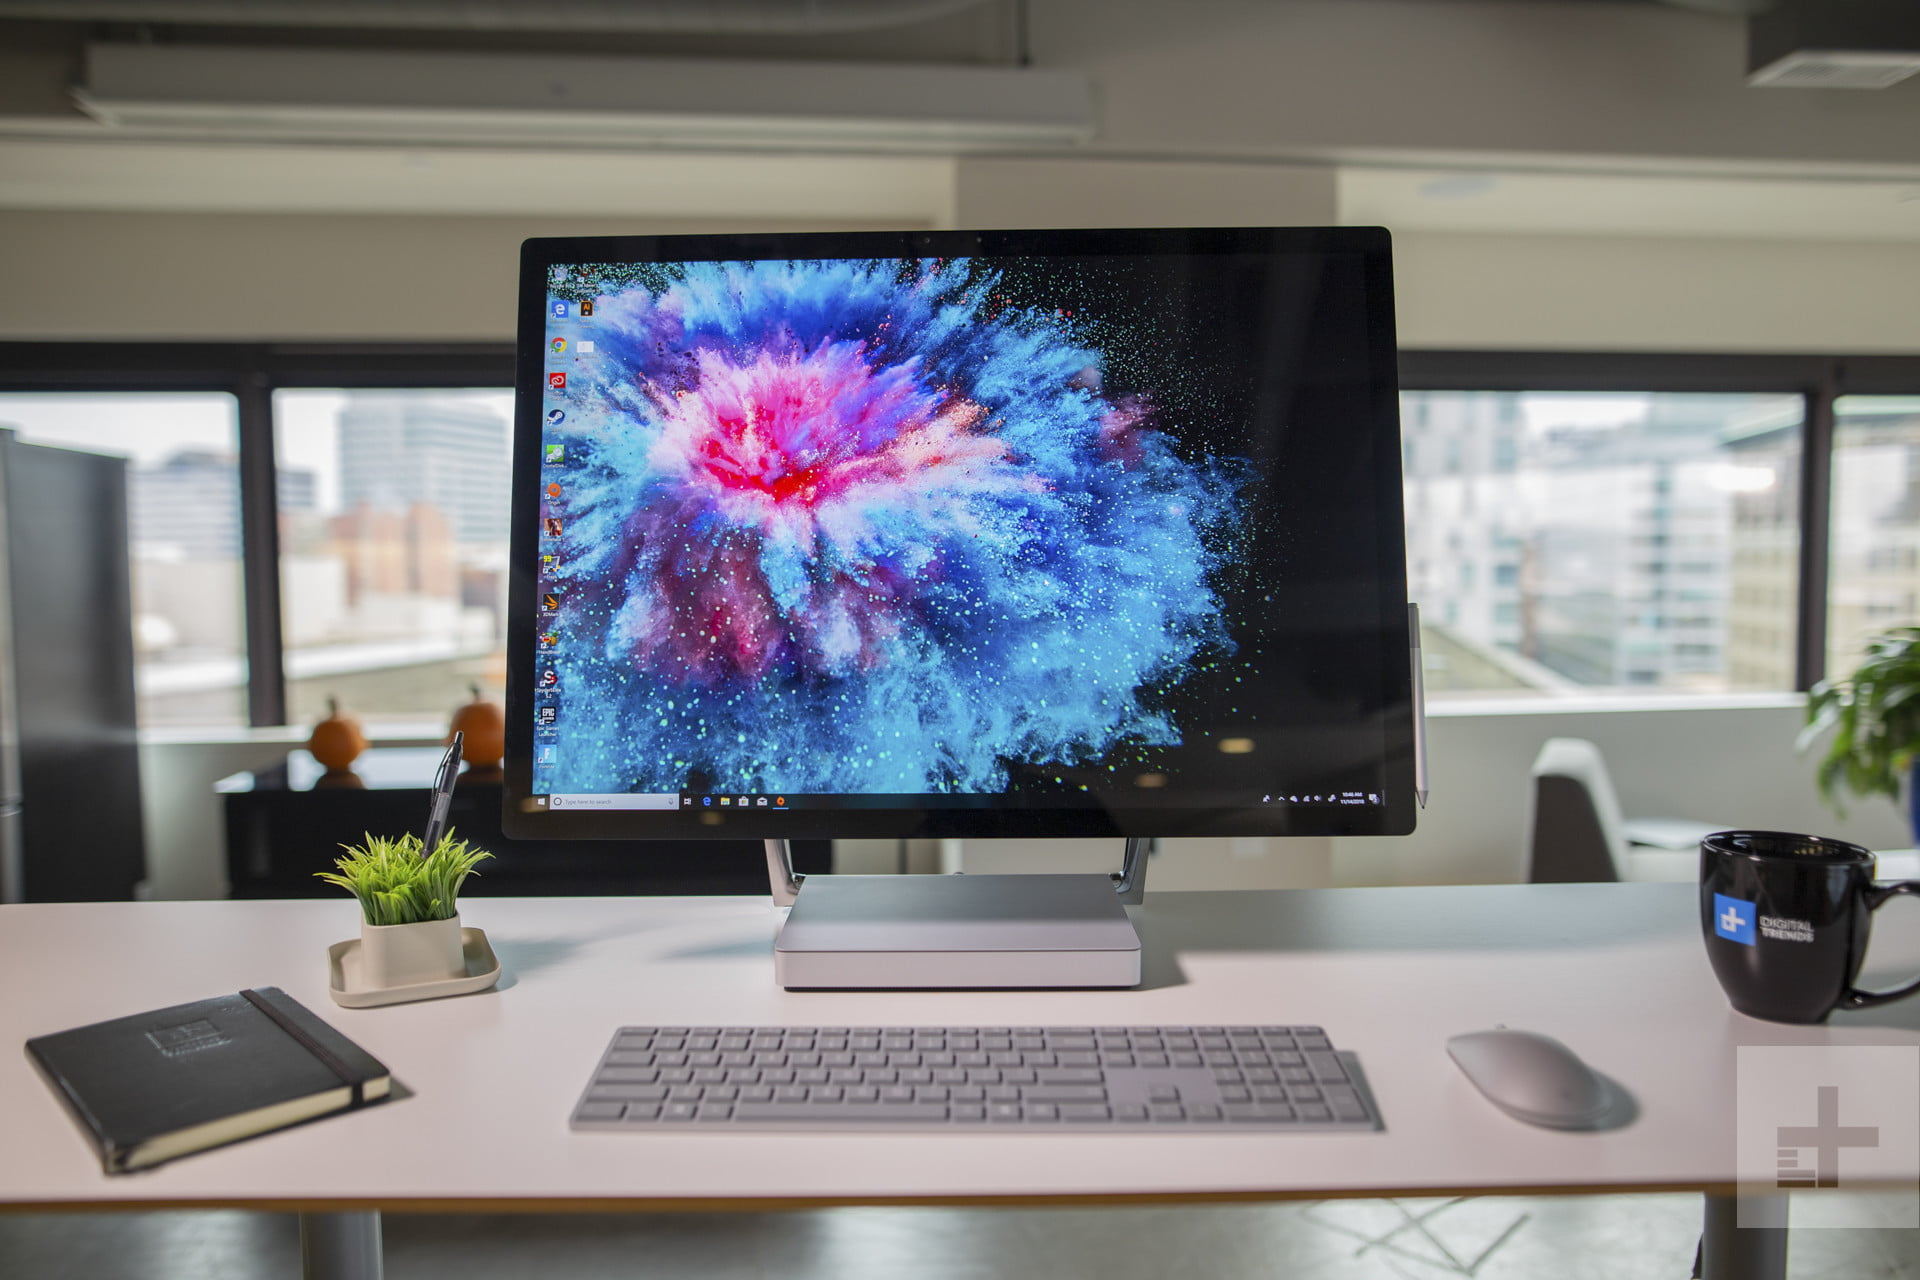 Best Desktop Brands 2020 The Best All in One Computers for 2019 | Digital Trends